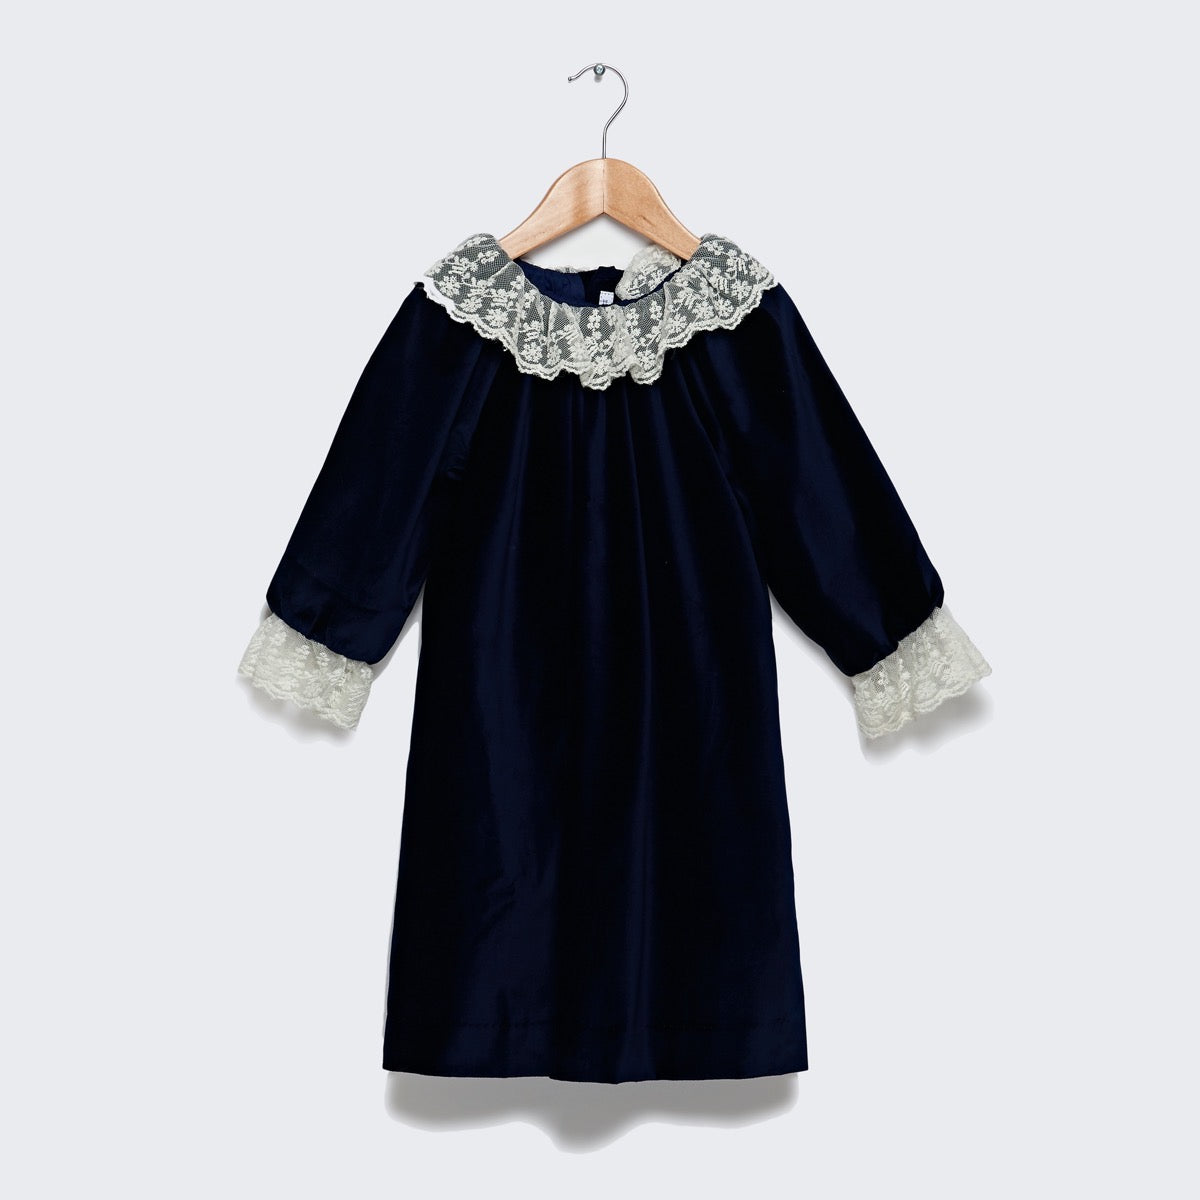 Weldon Velvet Dress